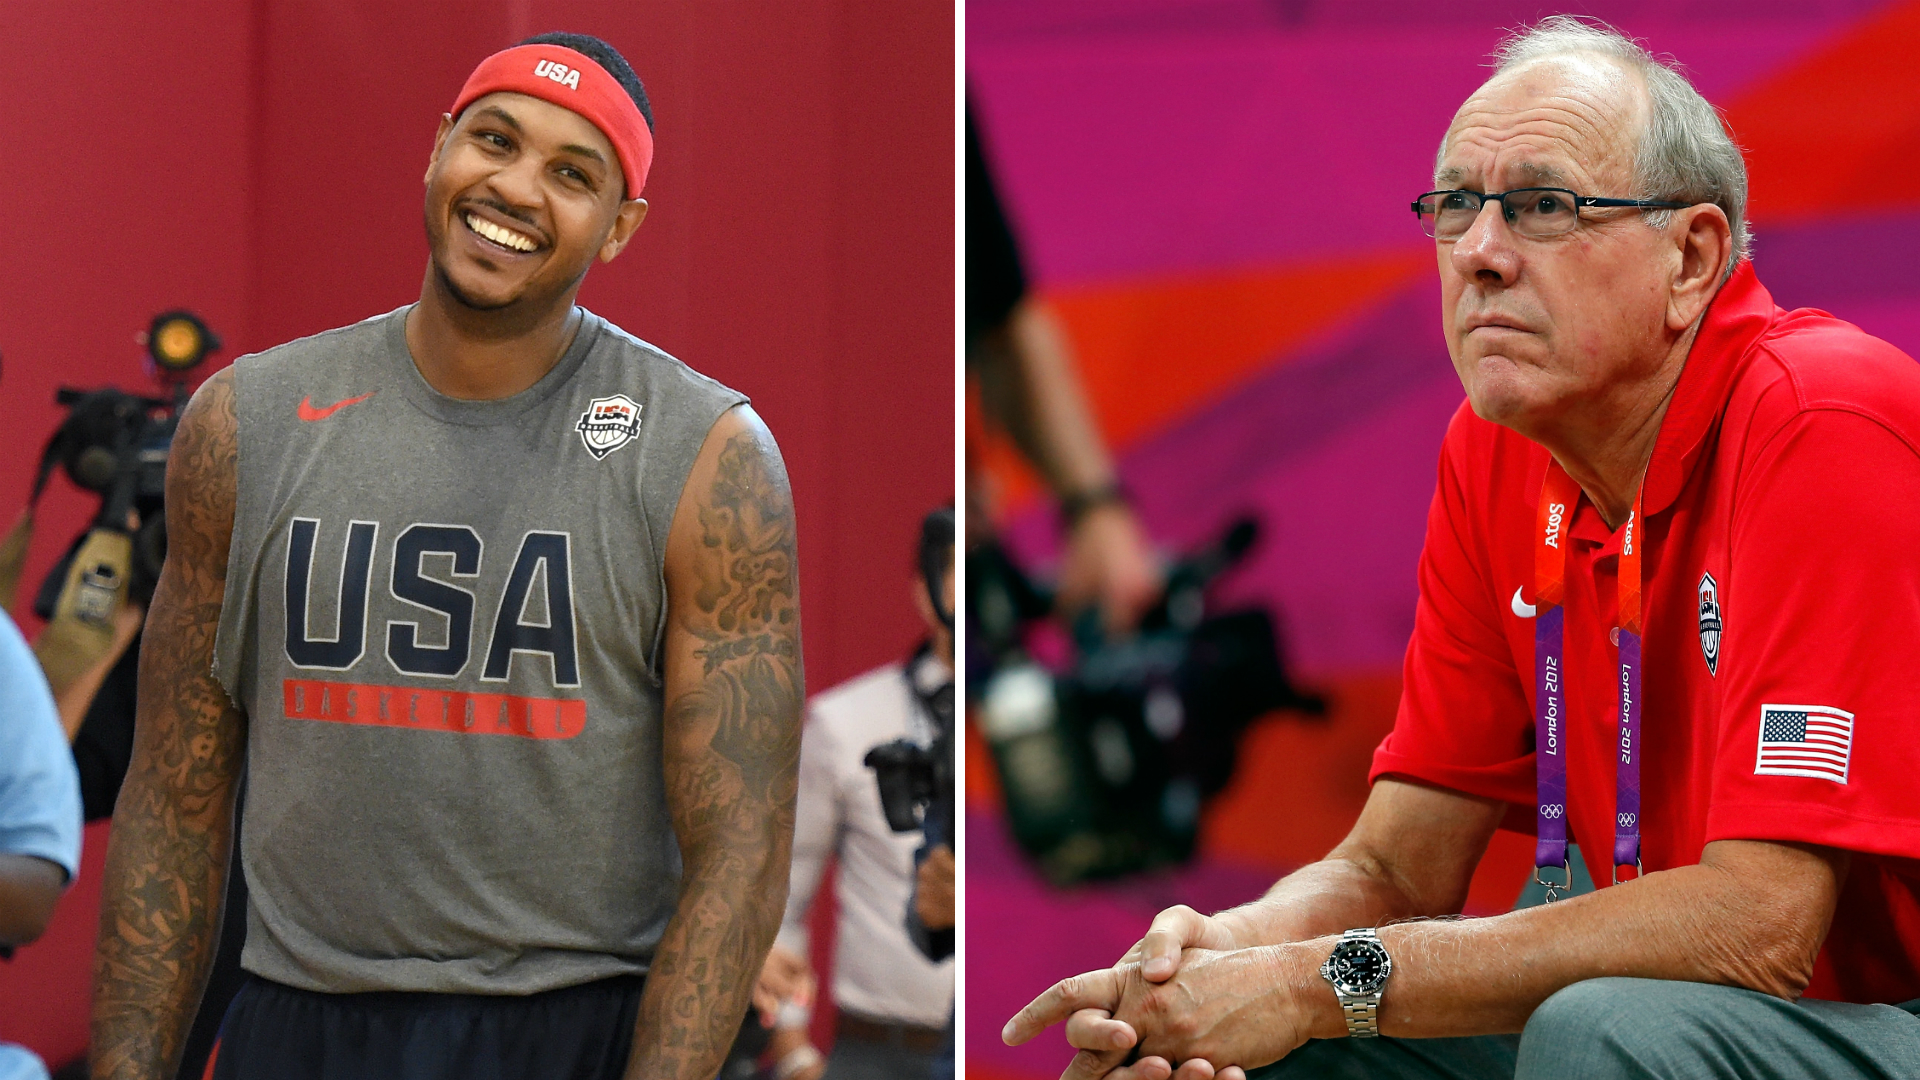 Carmelo-anthony-jim-boeheim-getty-ftr-072116_1r6y6dkioqxkj1pf21lghptk9f